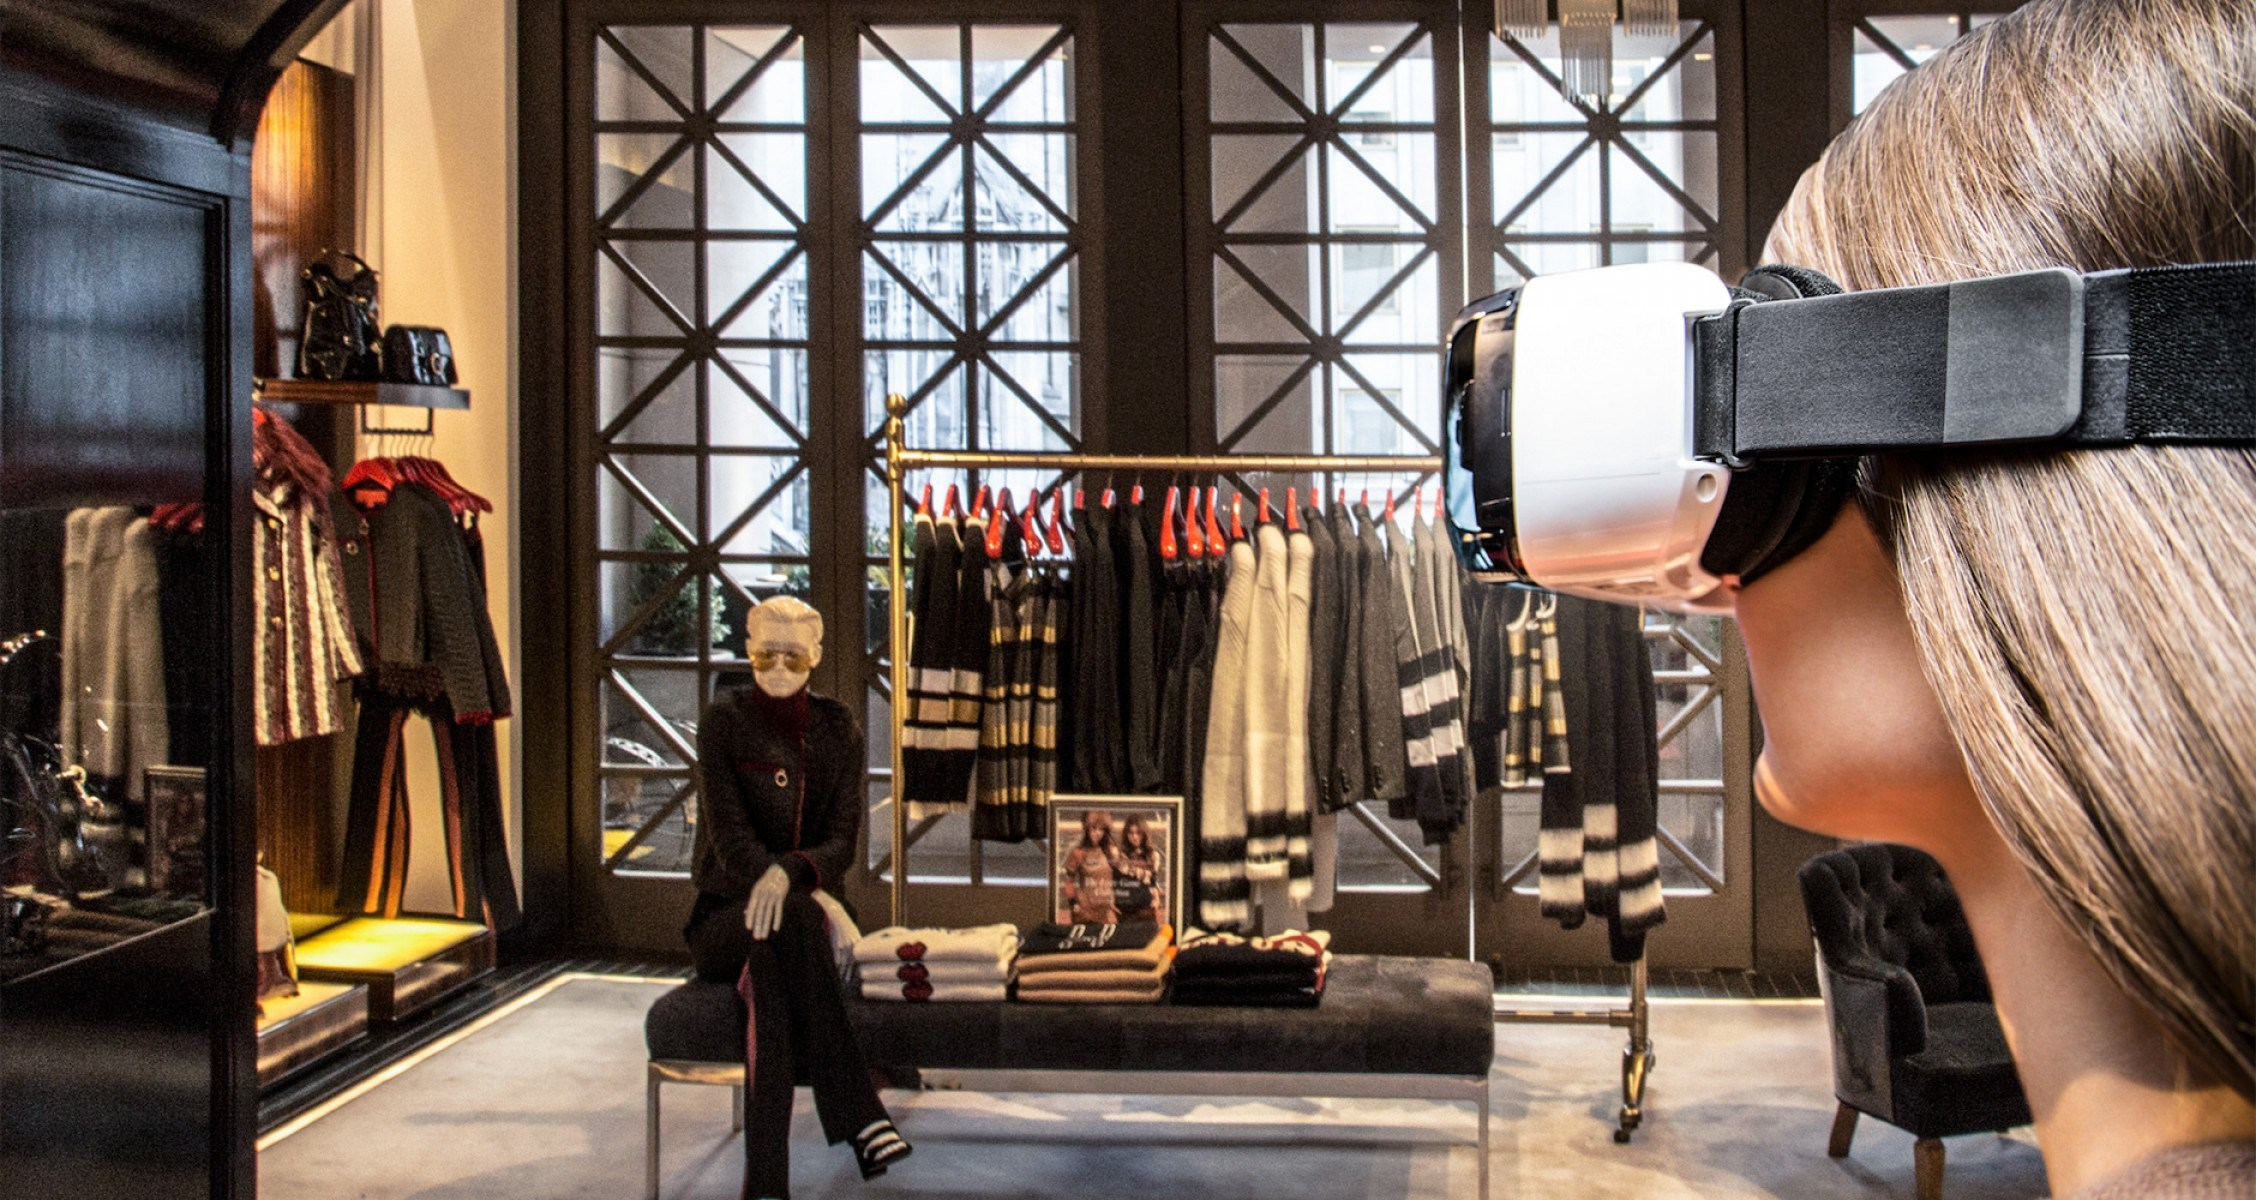 How can AR and VR boost retail sales?